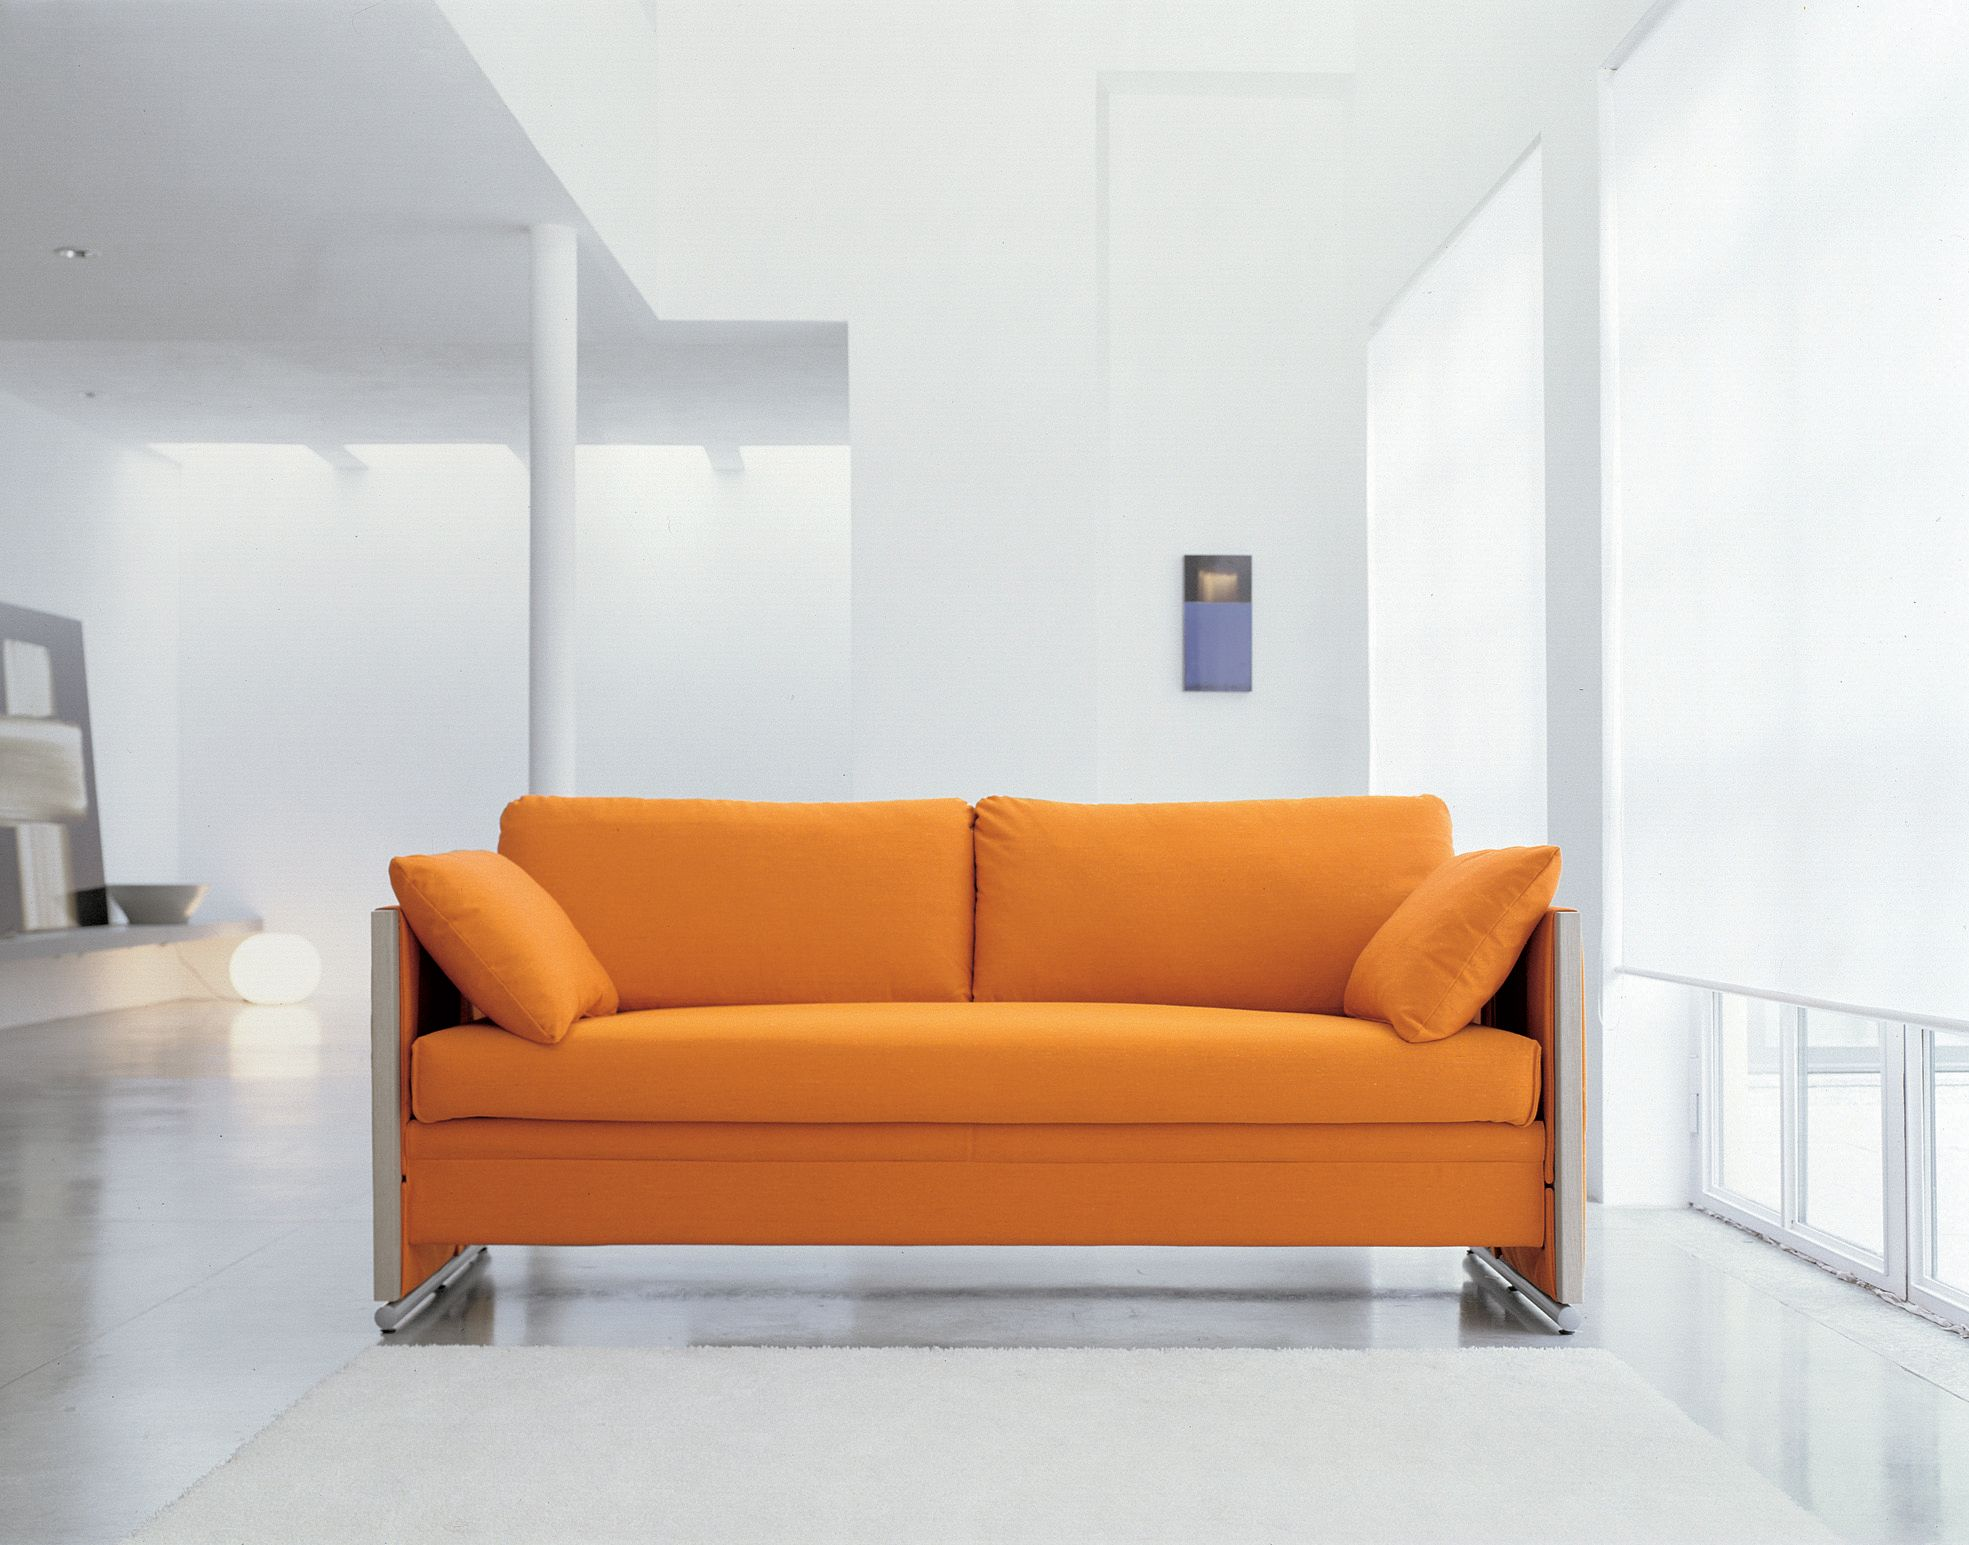 Bettsofa Orange Couch Colour Style I E No Buttons Etc Great Room Dining